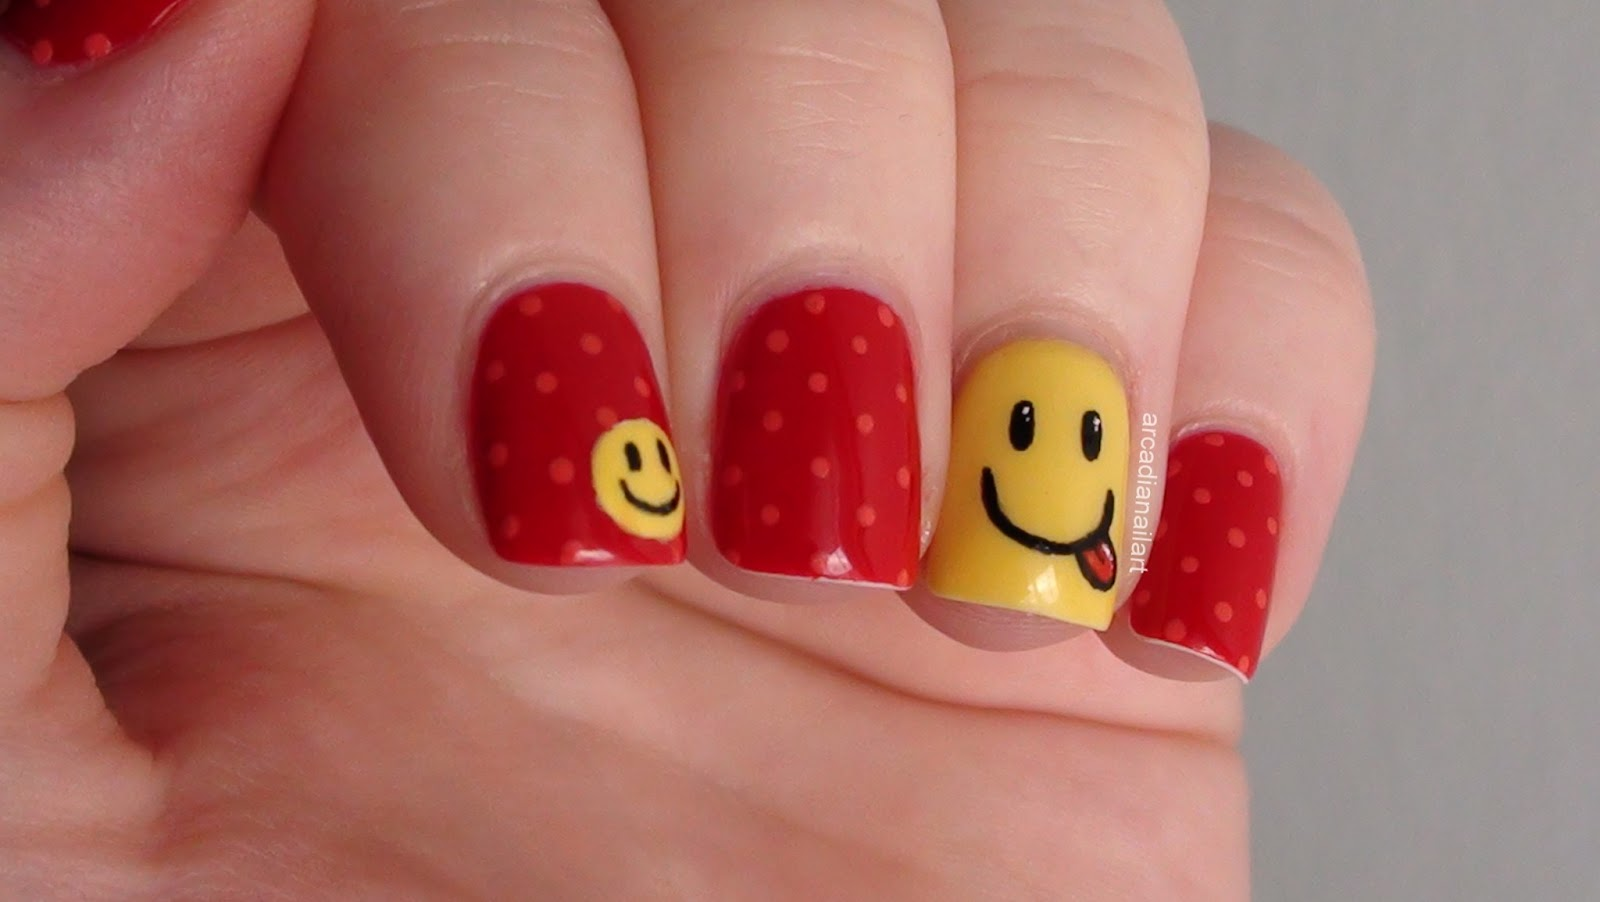 ArcadiaNailArt: Smiley Face Nail Art Tutorial